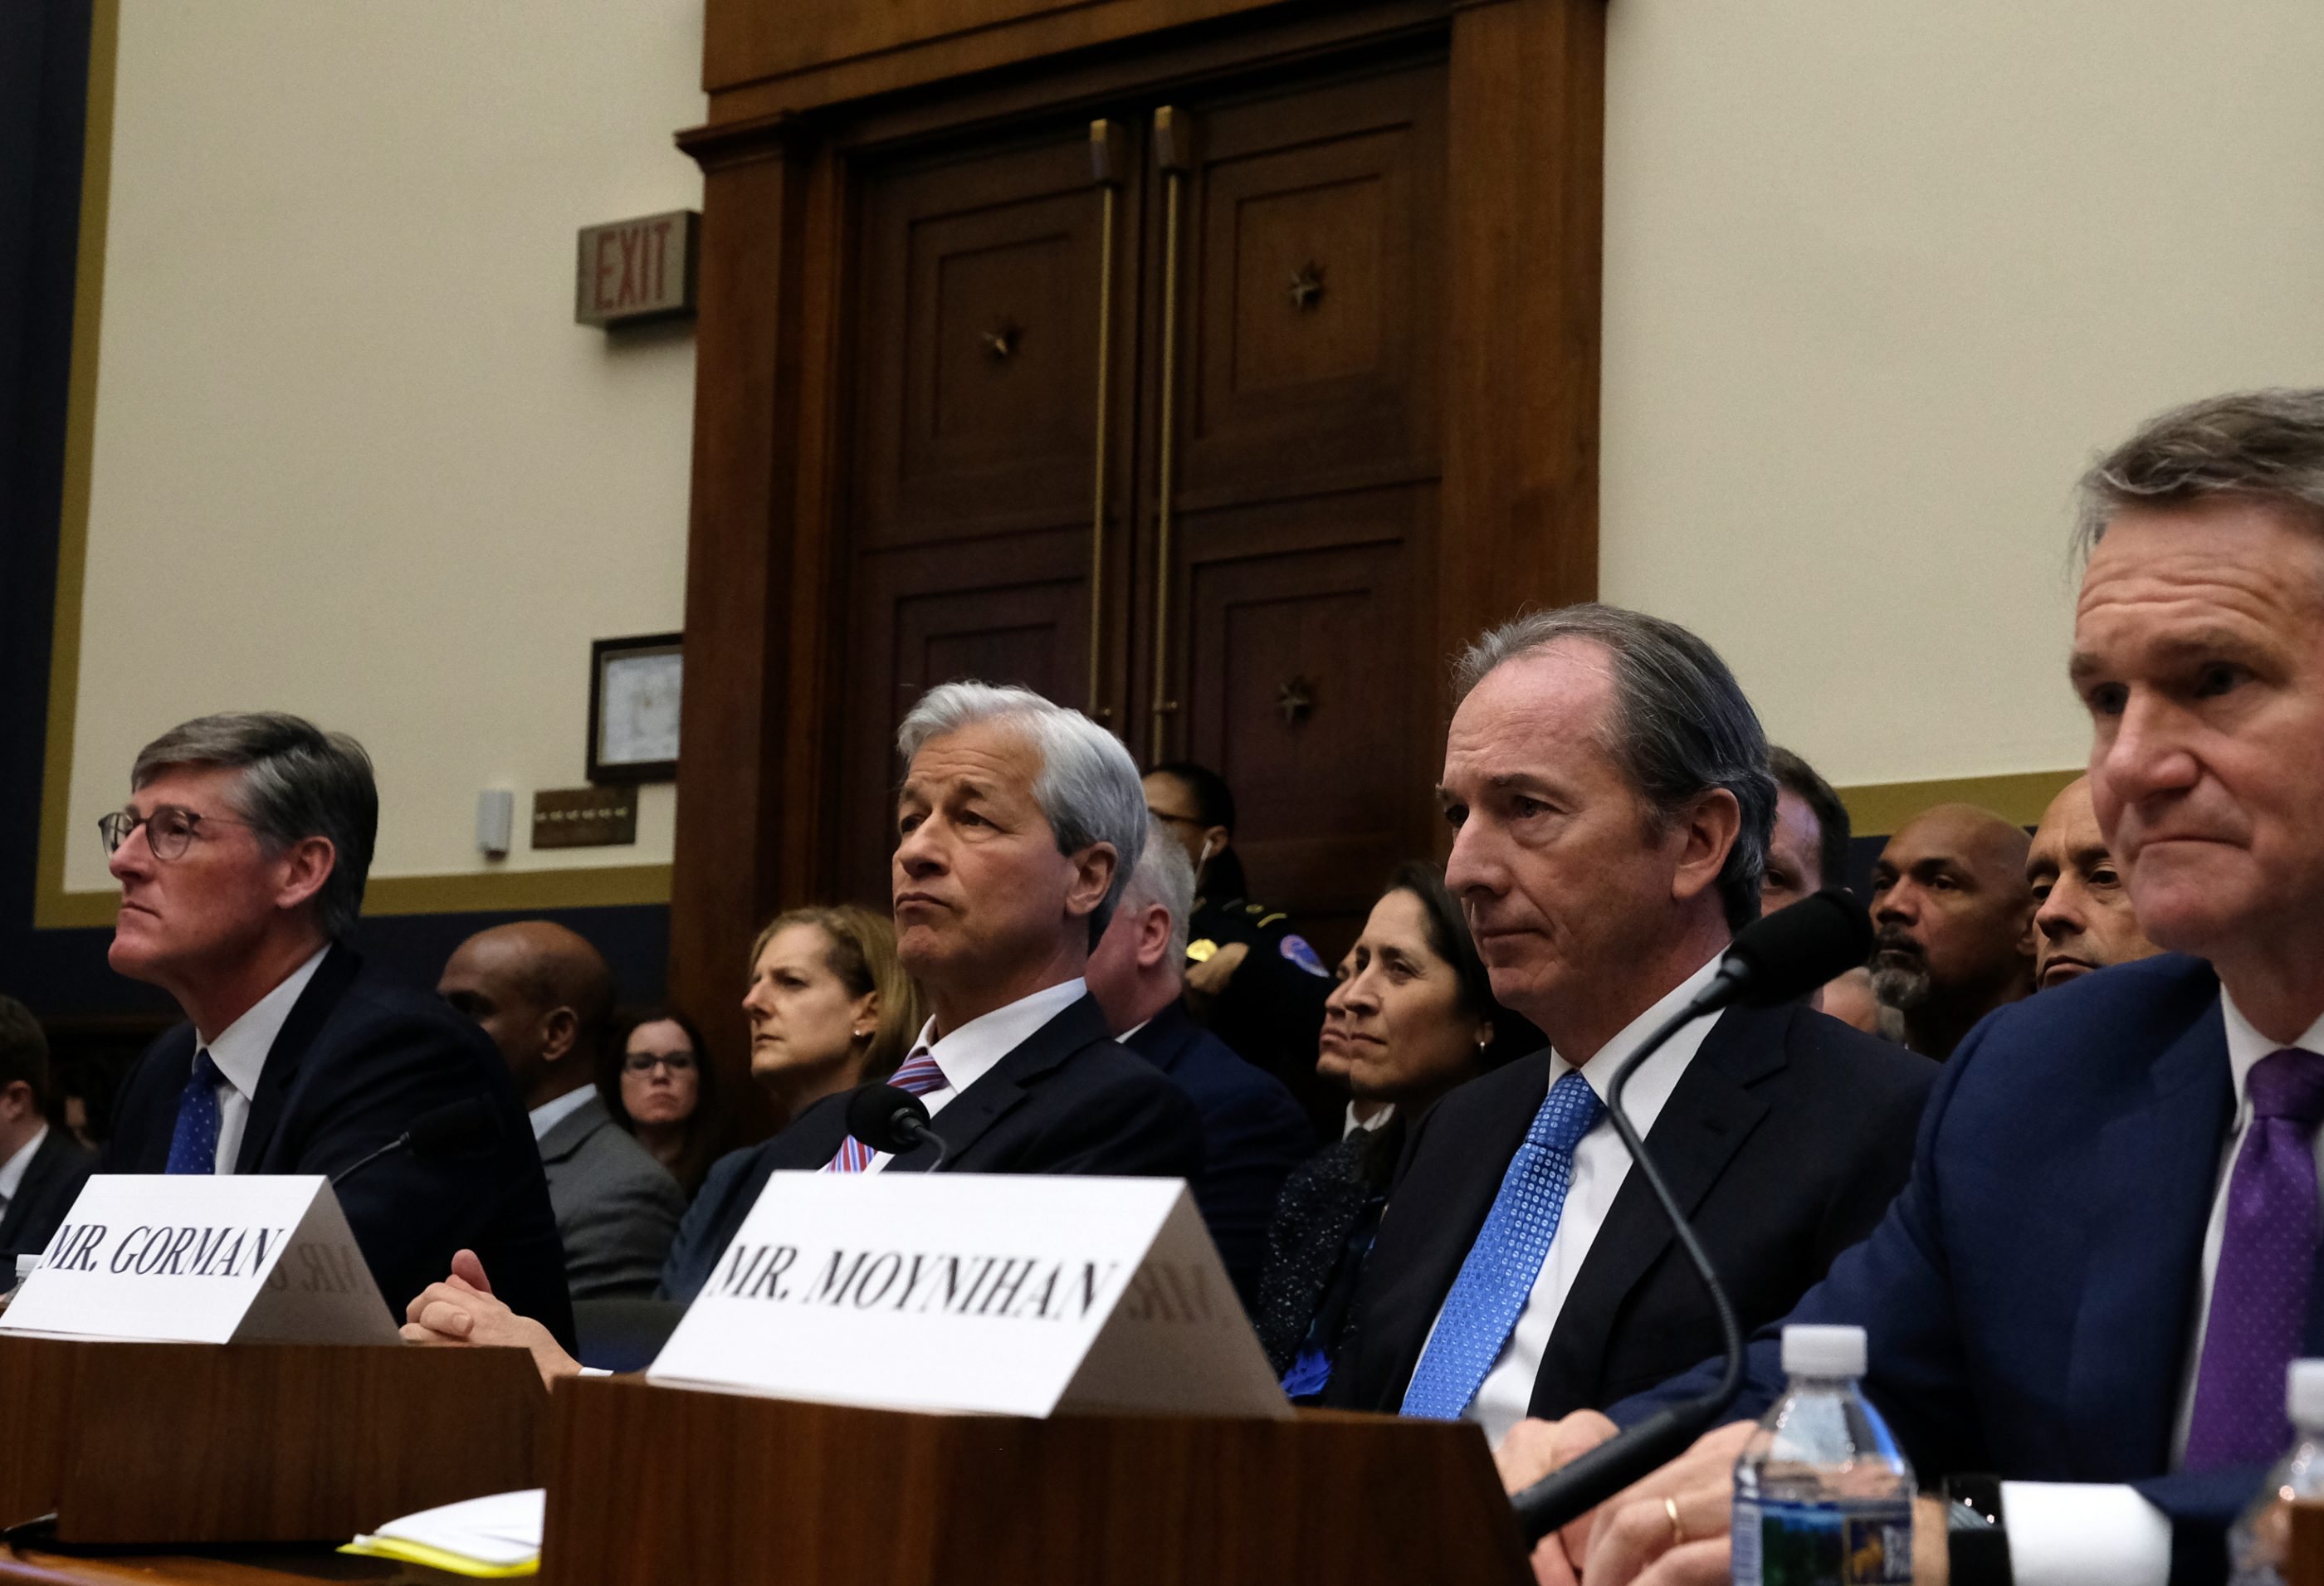 (From left) Citigroup CEO Michael Corbat, JPMorgan Chase CEO Jamie Dimon, Morgan Stanley CEO James Gorman, and Bank of American CEO Brian Moynihan listen during a House Financial Services Committee hearing  on April 10, 2019 in Washington, D.C.